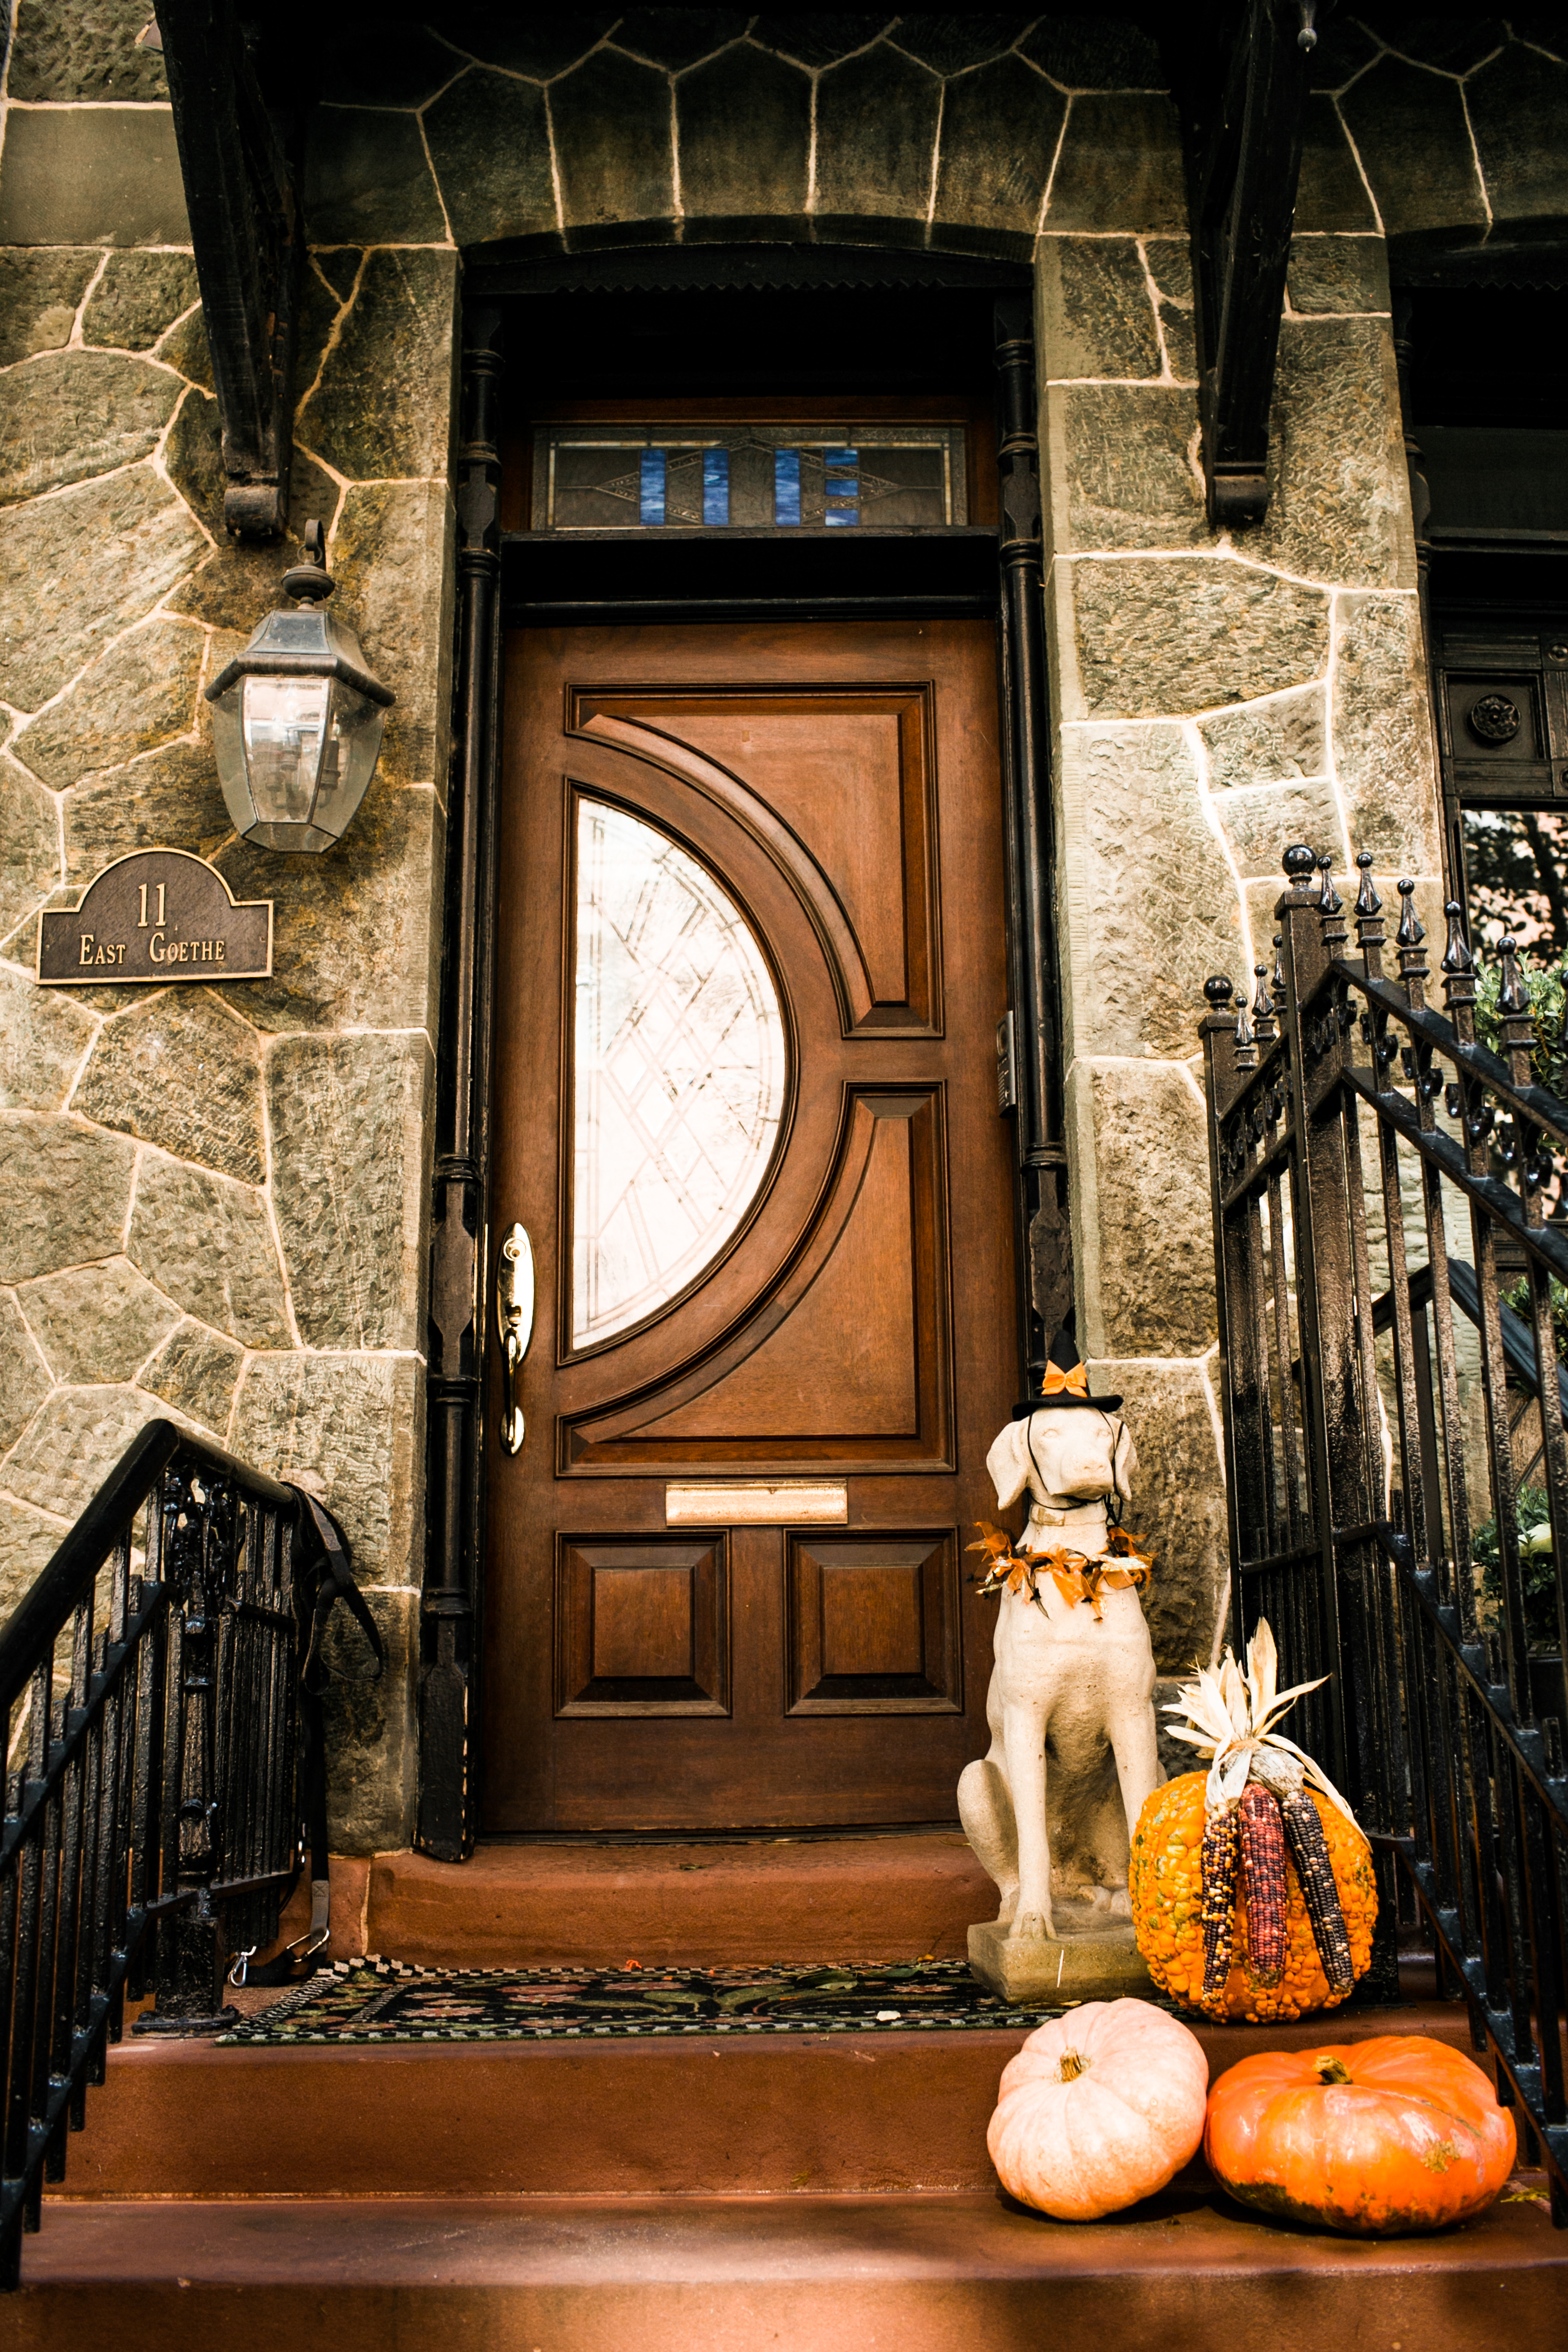 A sweet pup statue giving this front stoop a warm touch.